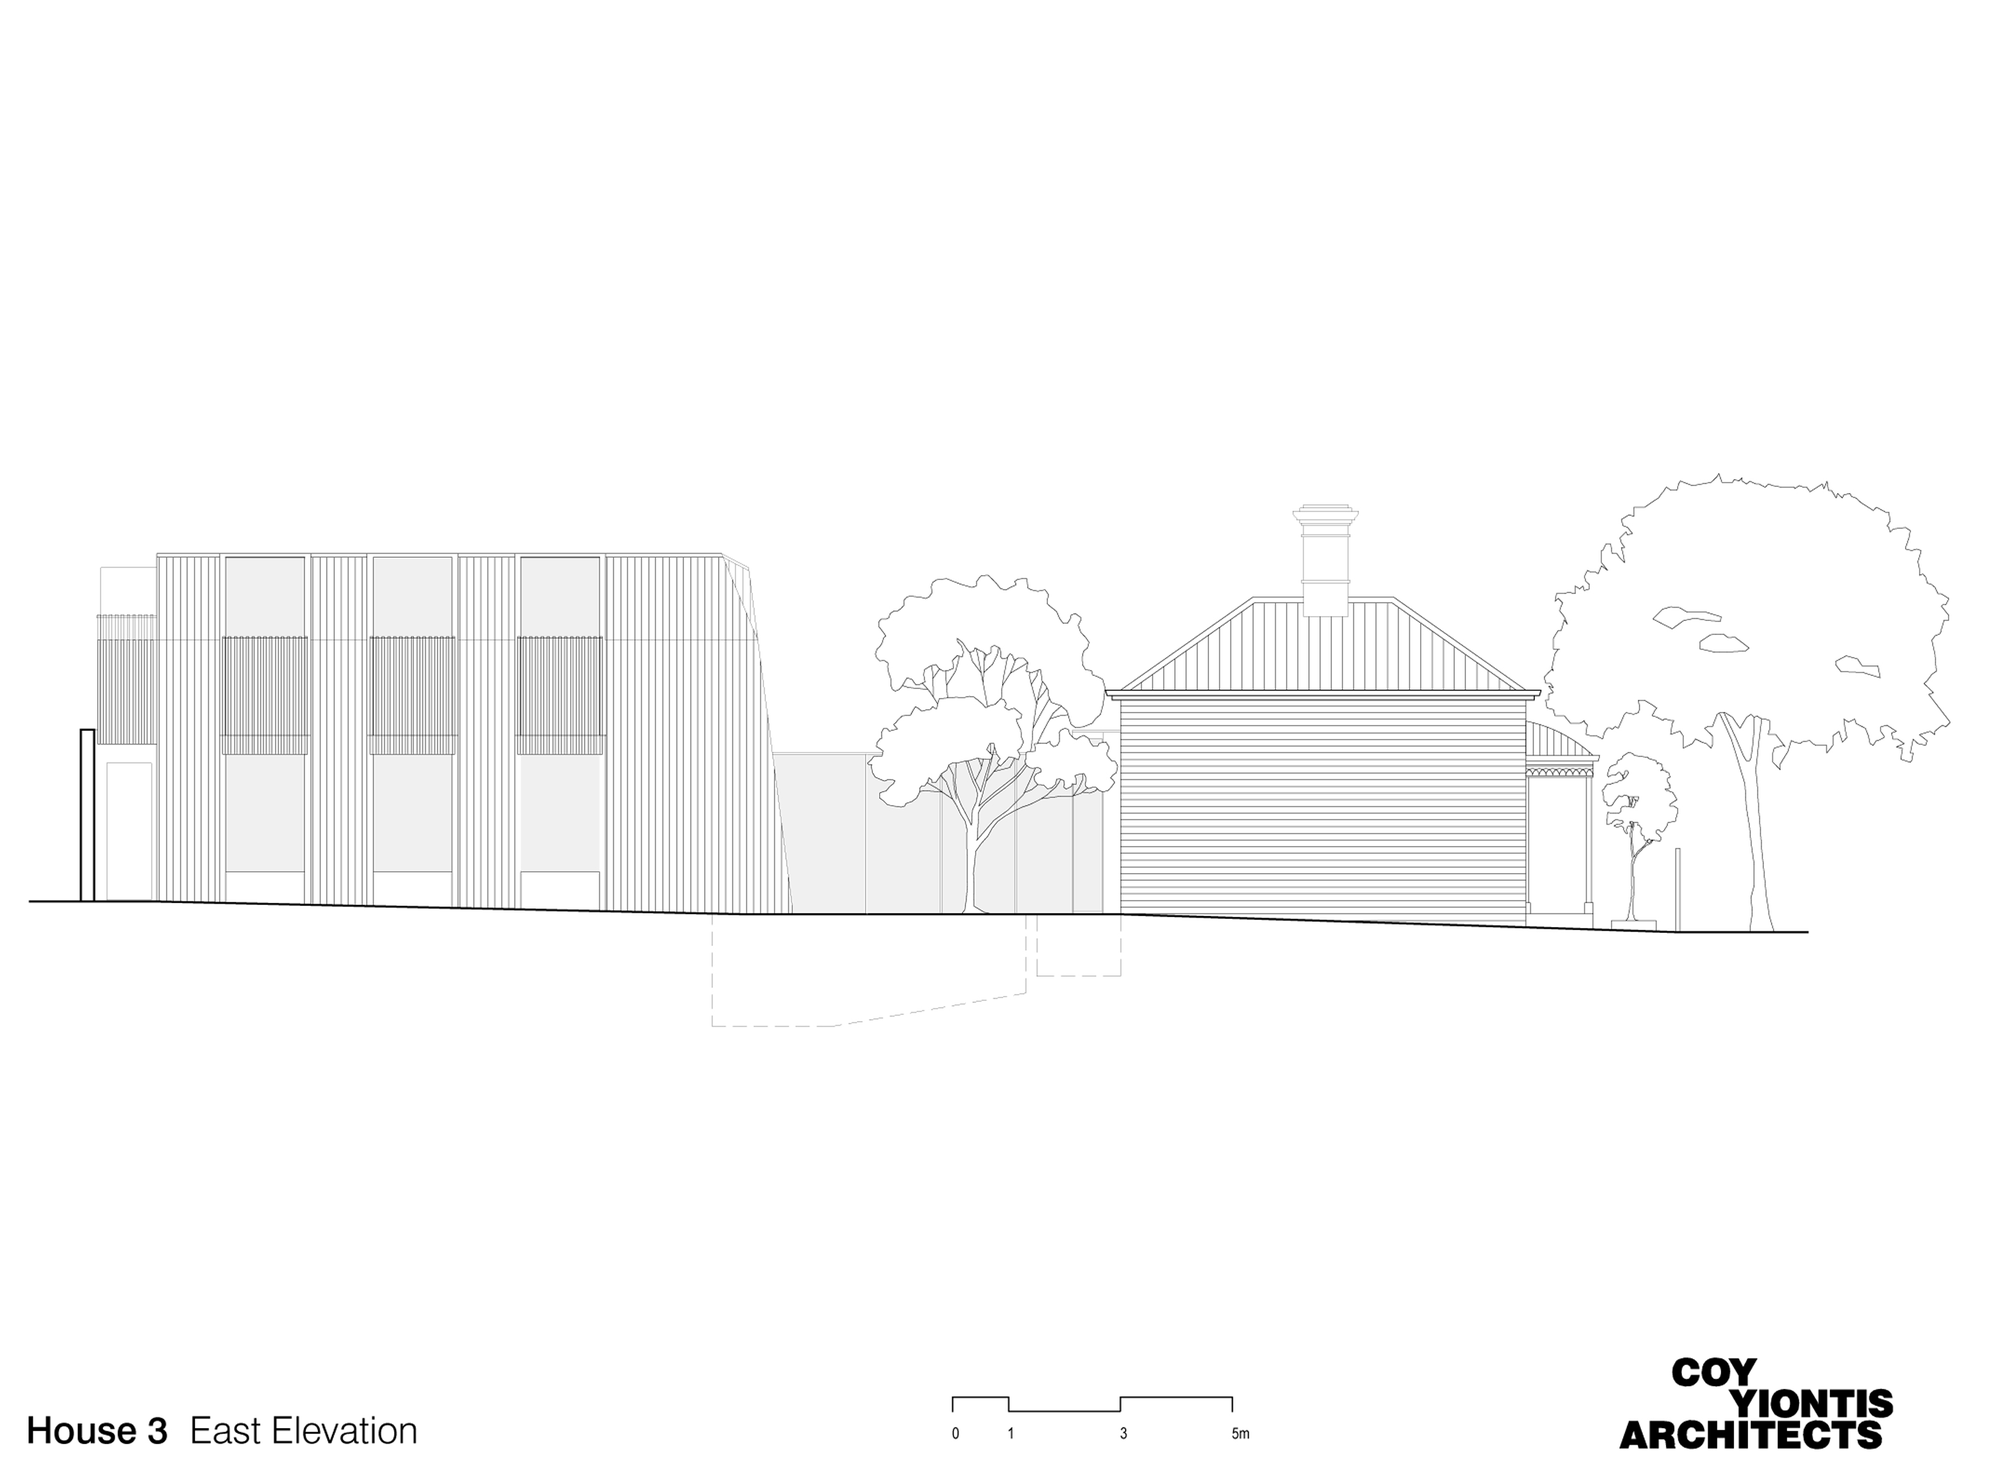 House_3-Coy_Yiontis_Architects-24.png